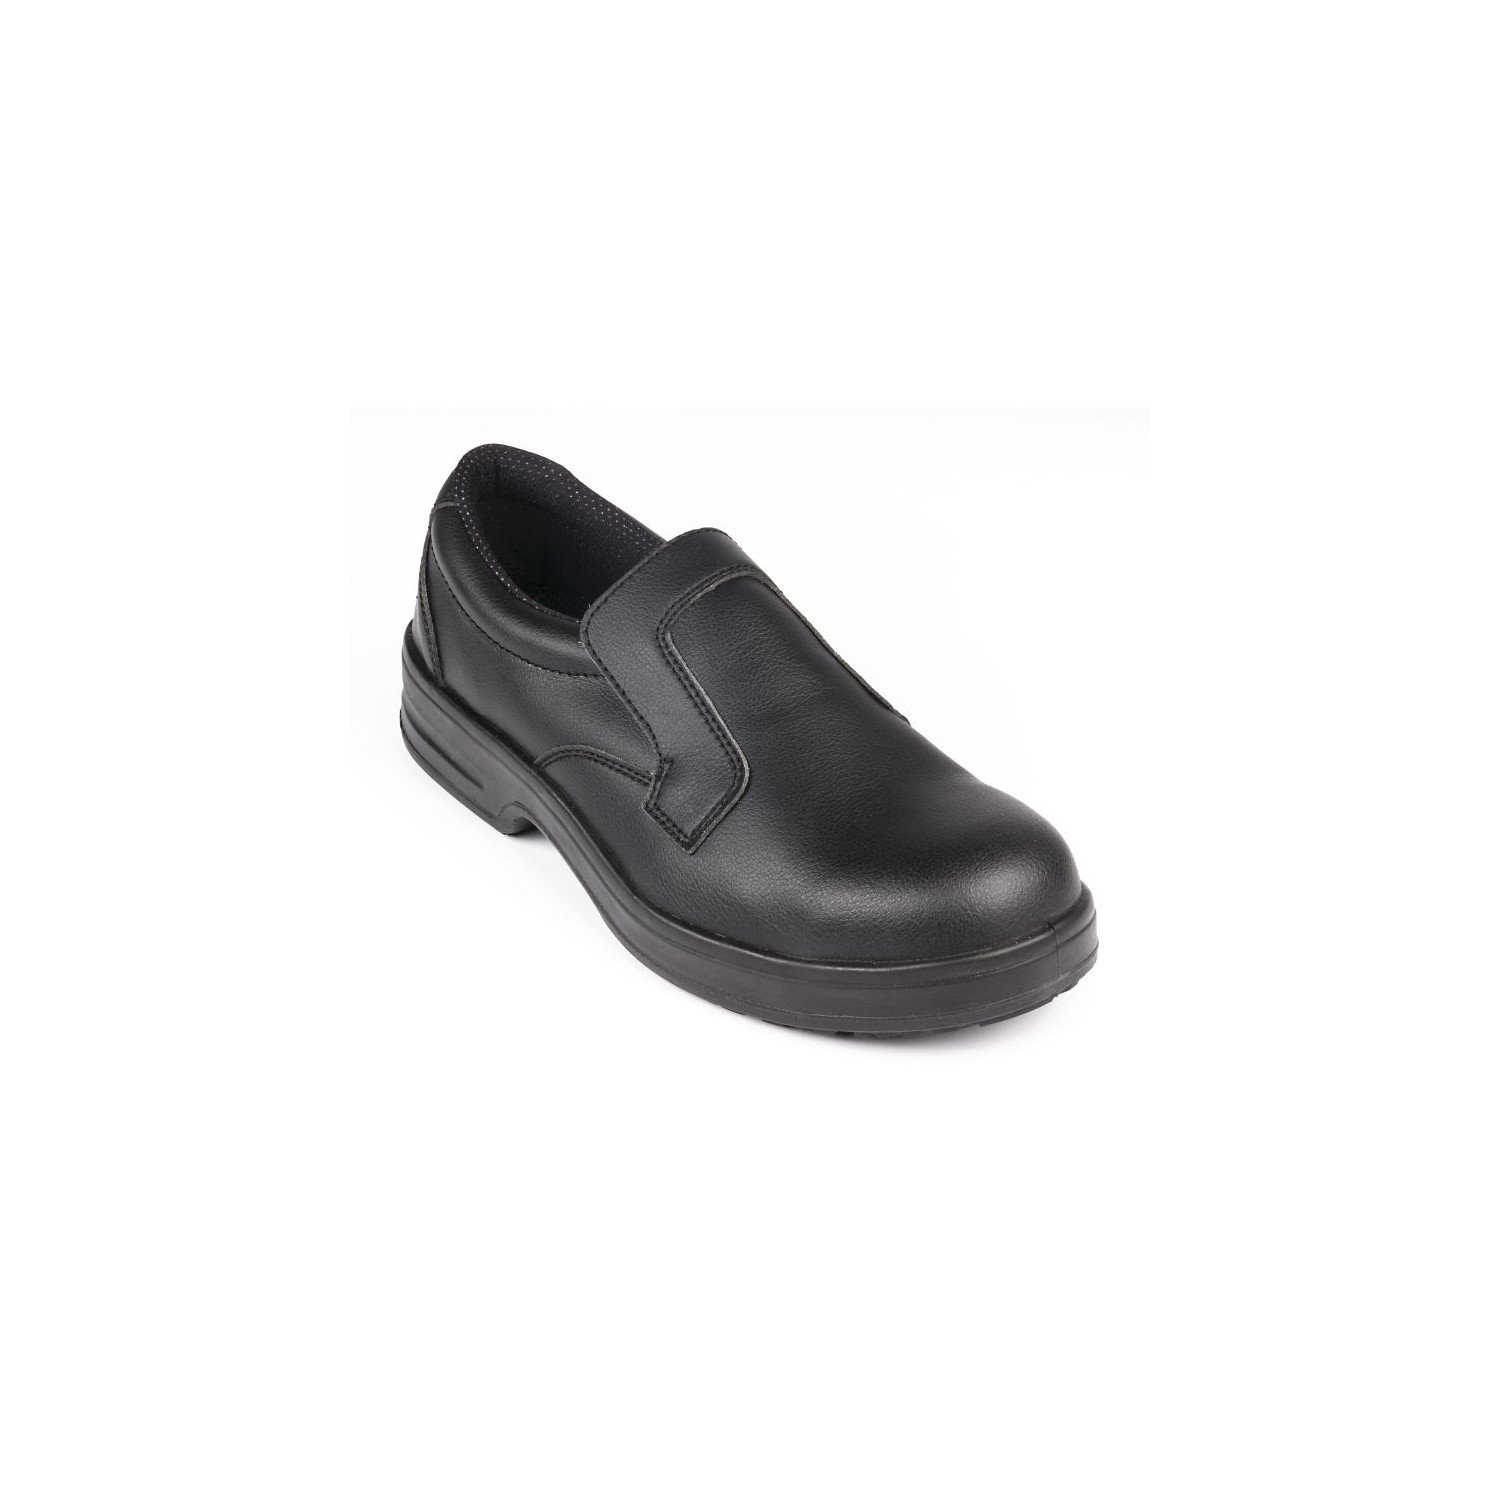 Mocassins imperméables/lavables noirs T.46 LITES SAFETY FOOTWEAR Nisbets Vêtements